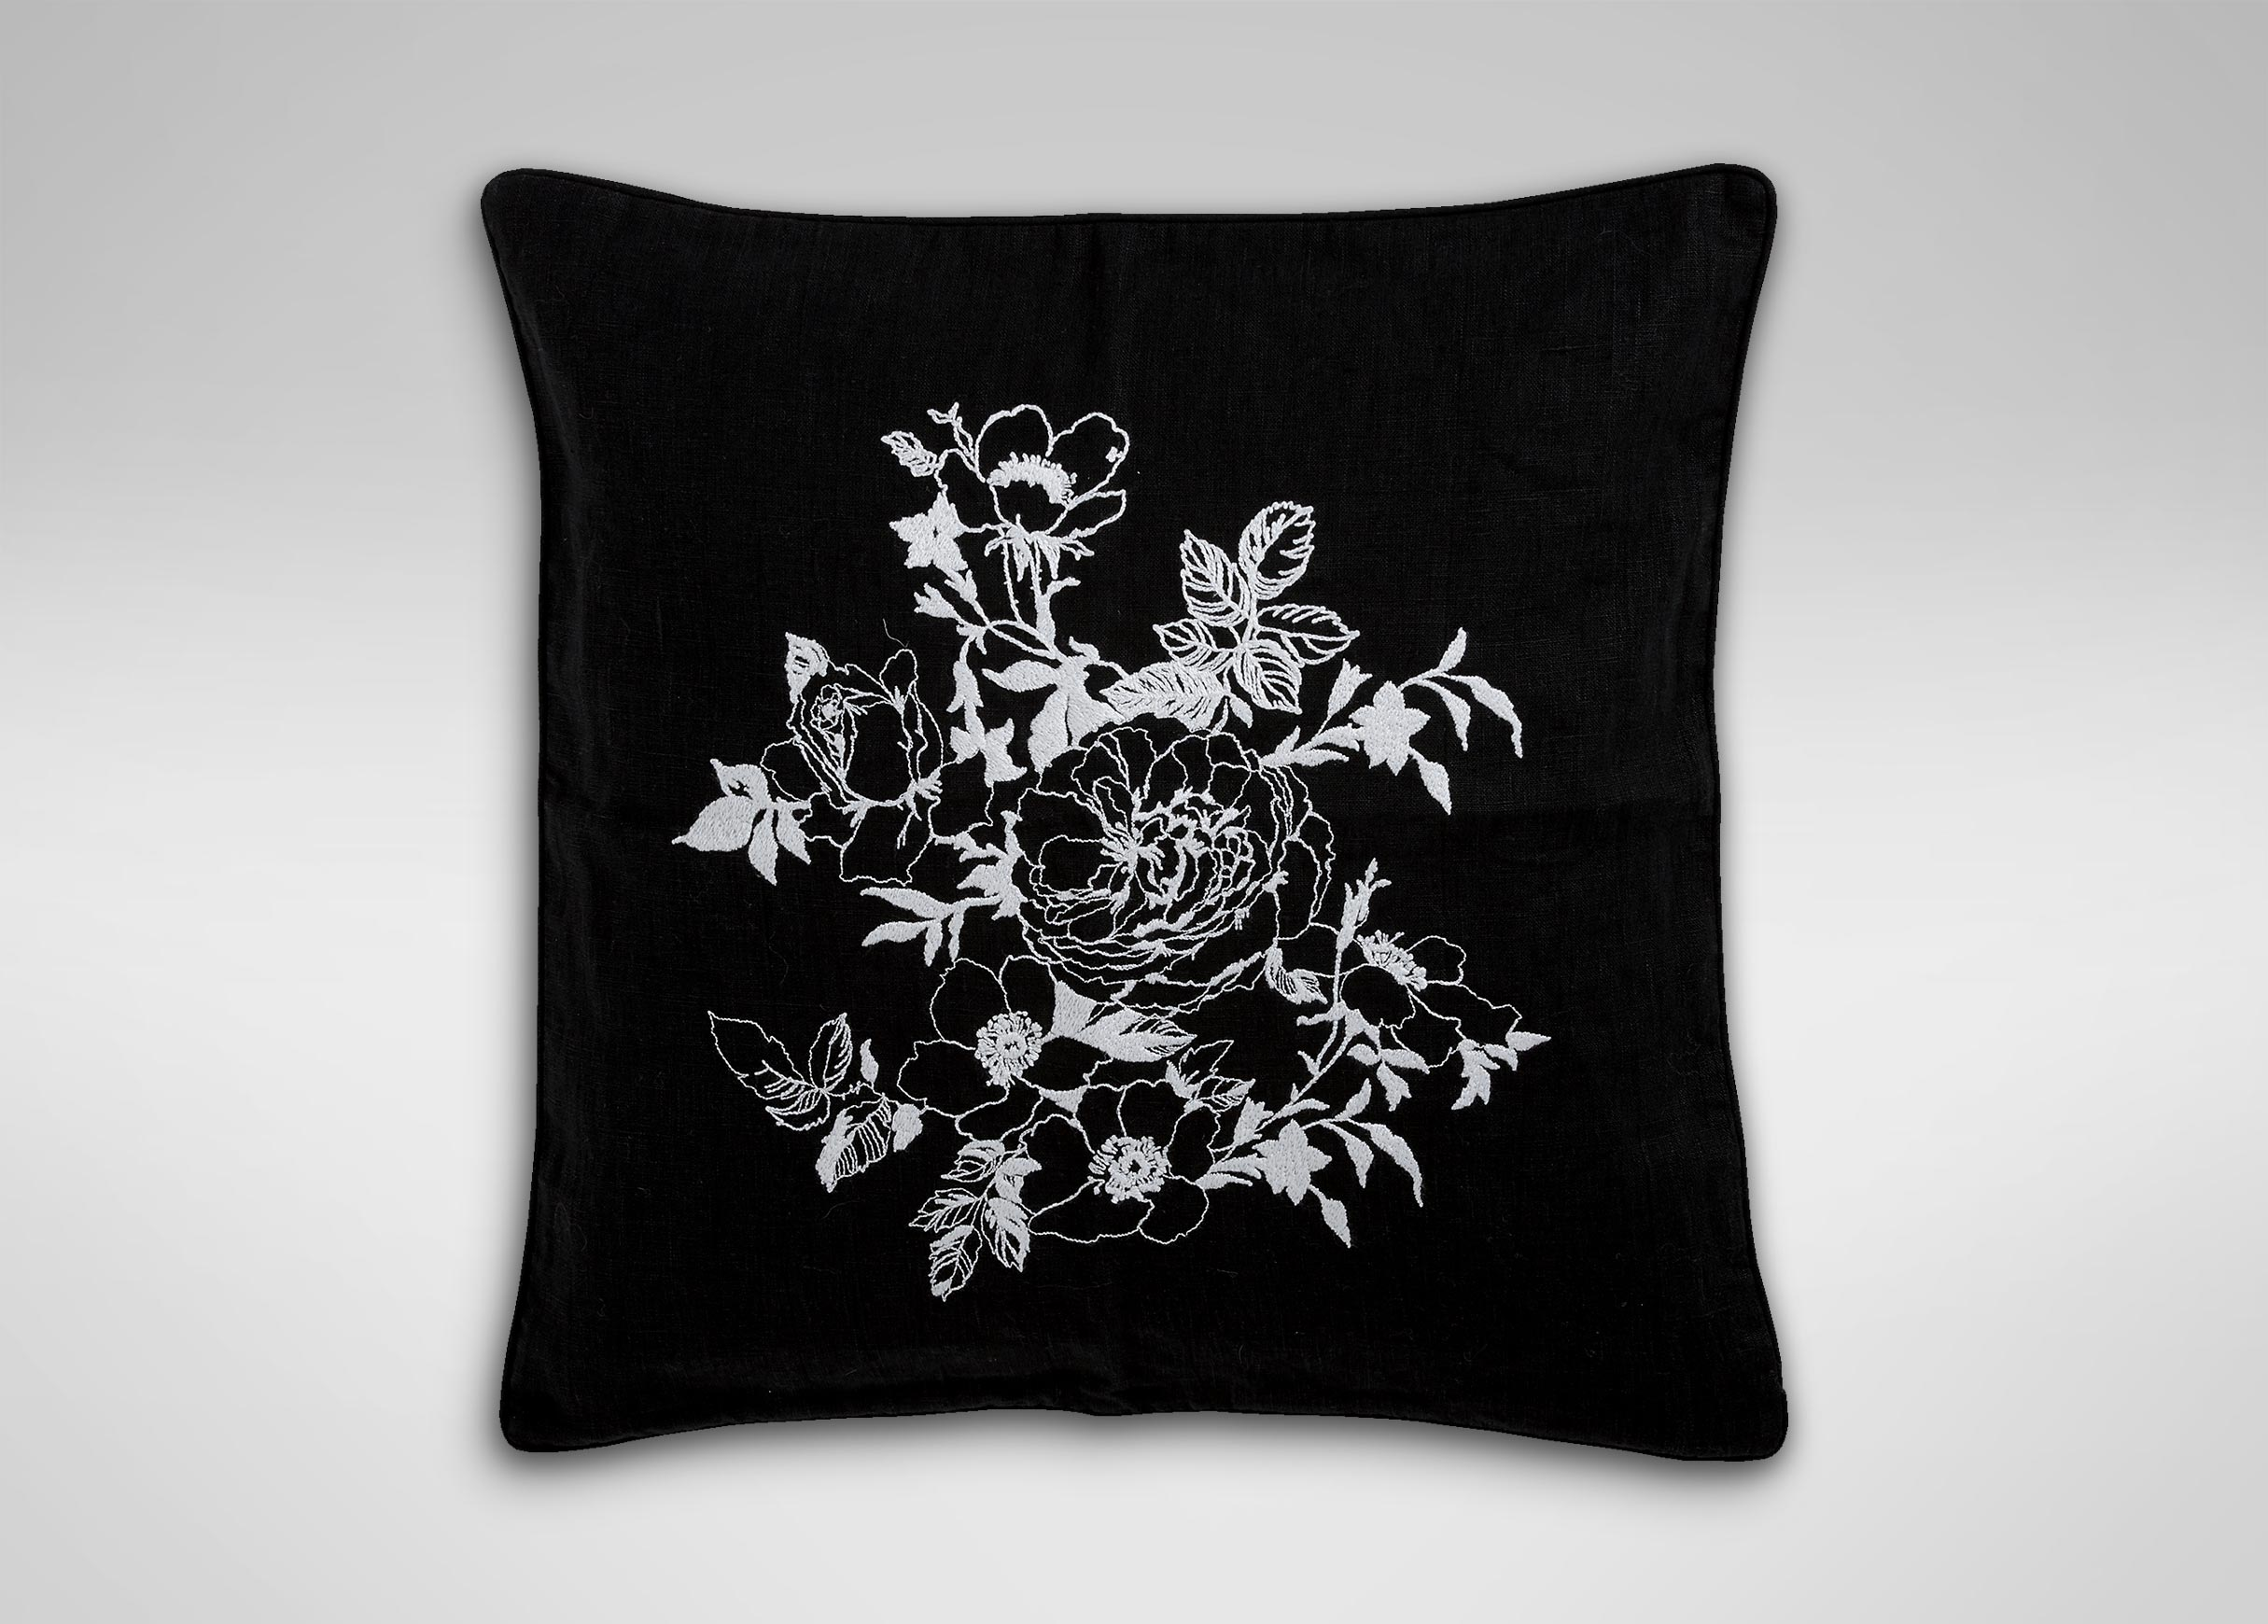 Black And White Floral Embroidered Linen Pillow